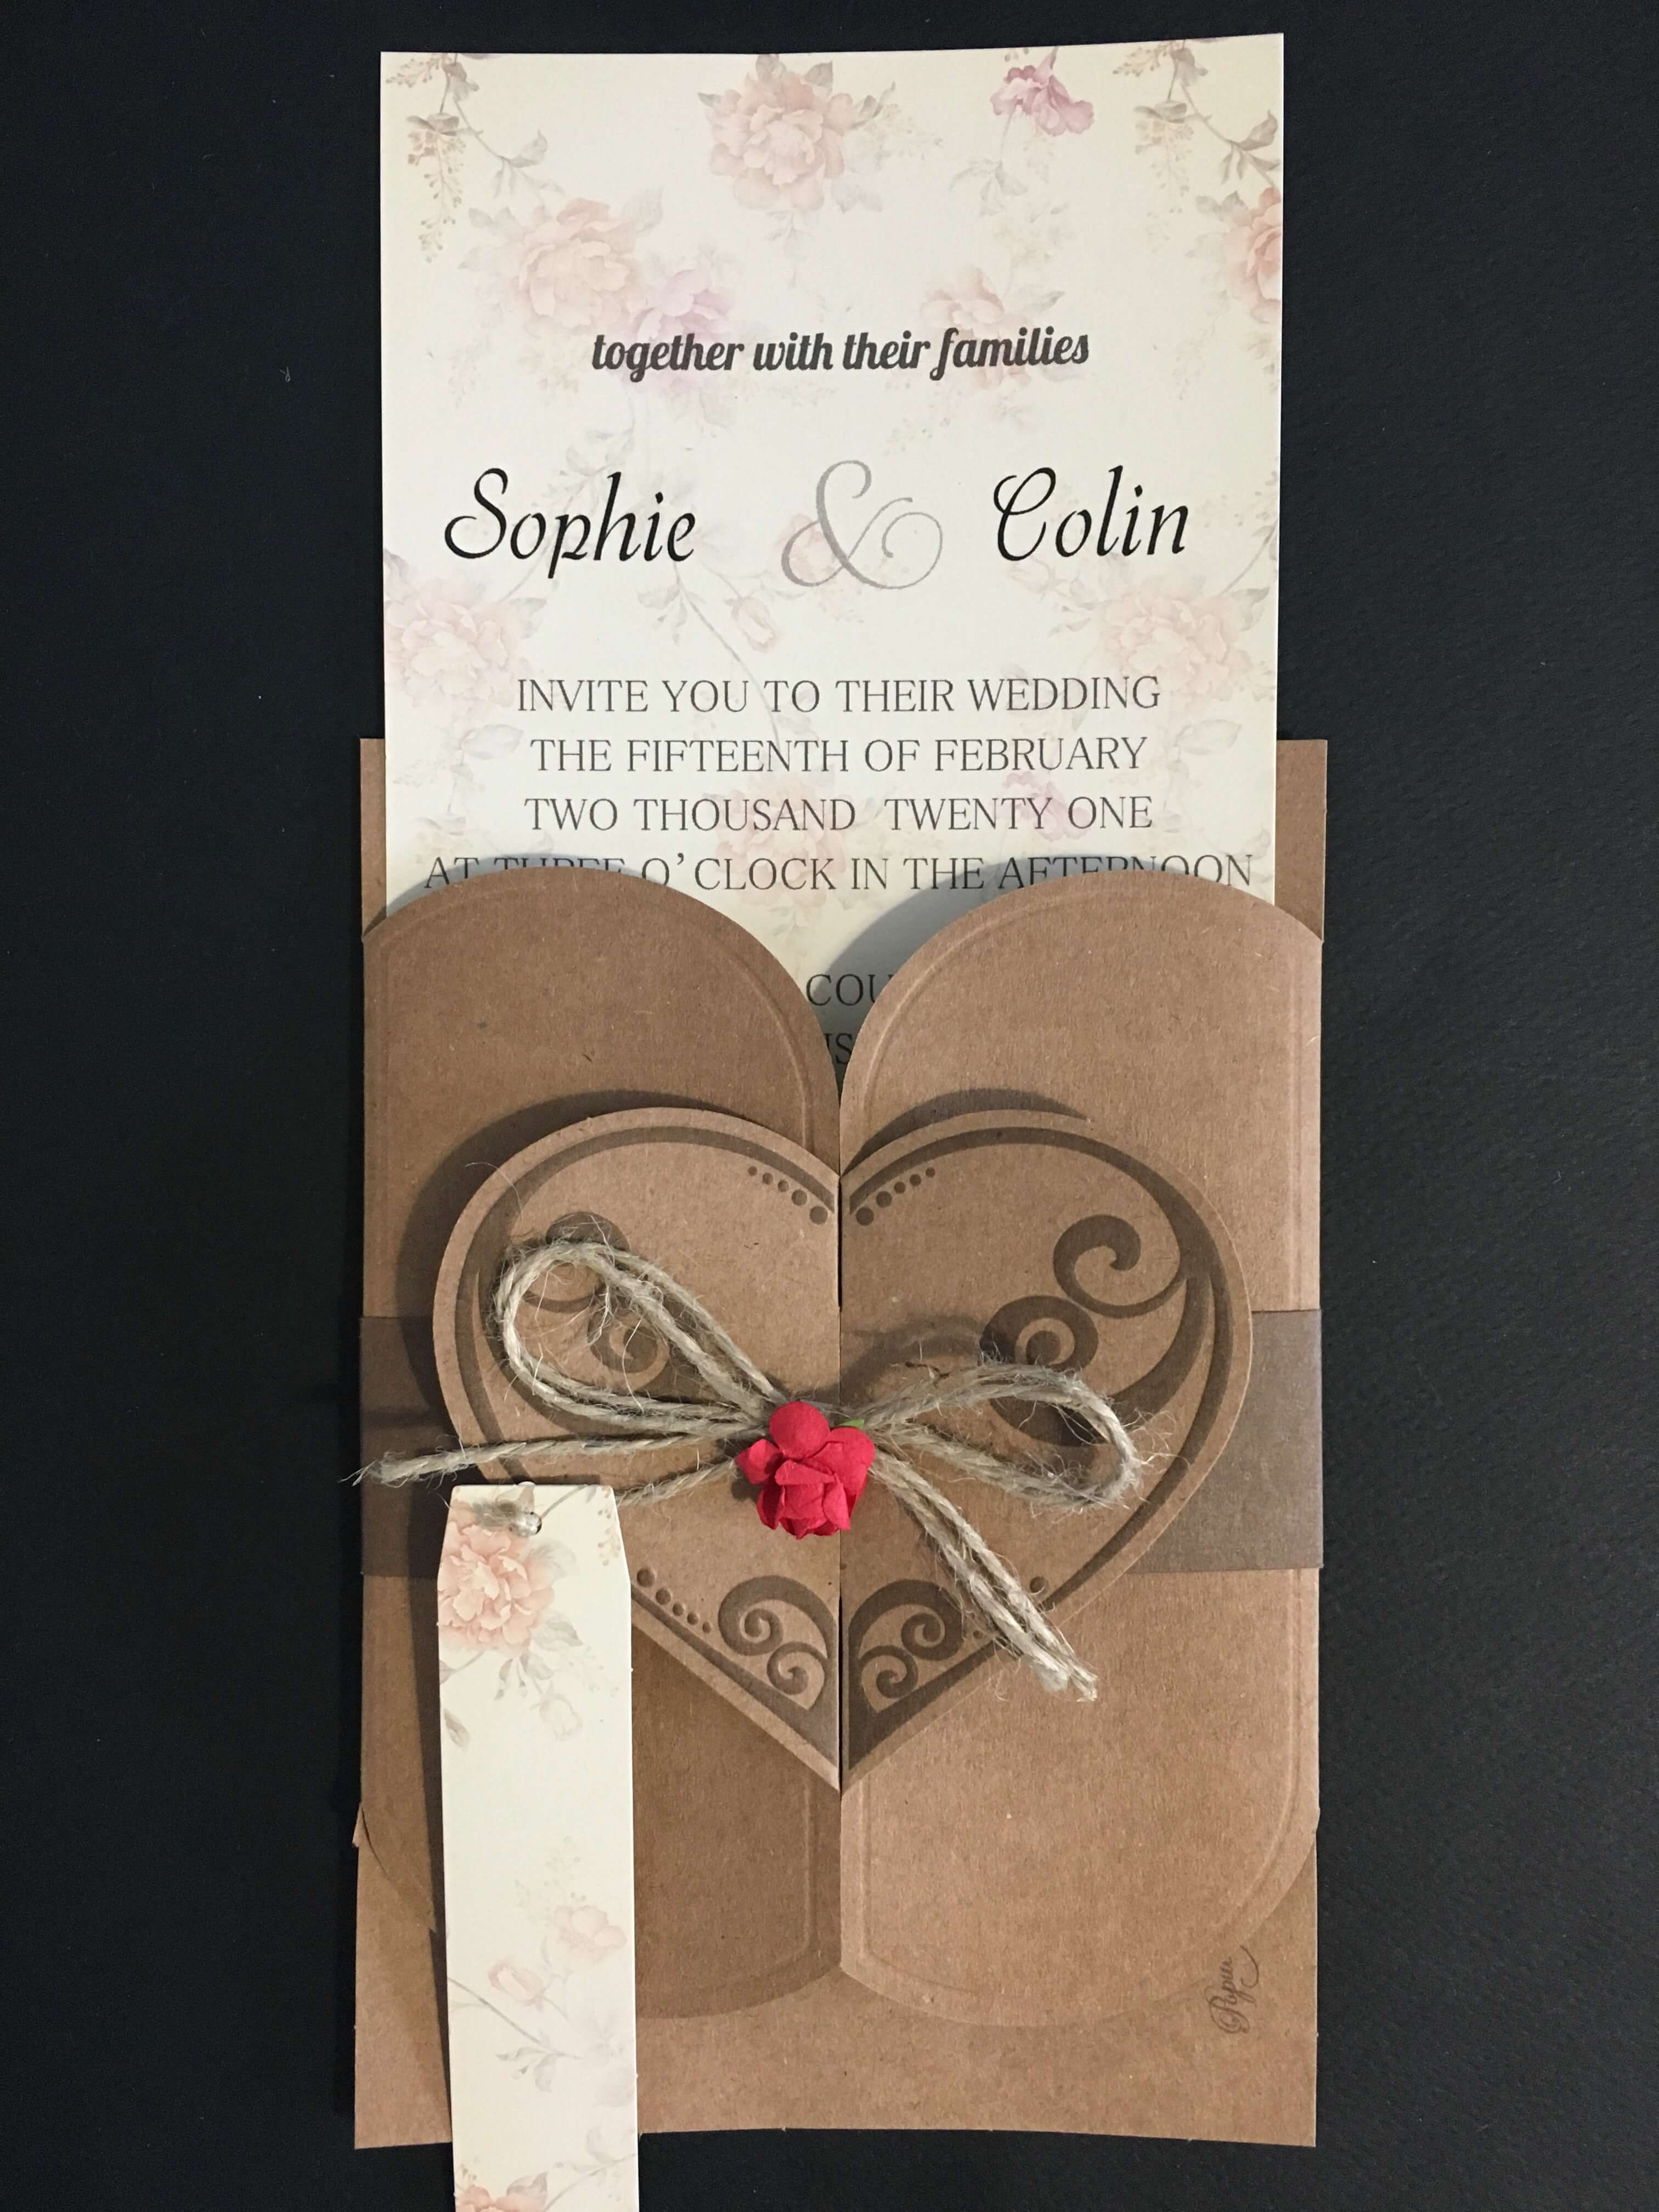 vintage style wedding invitations uk - weddingcardsuk.com